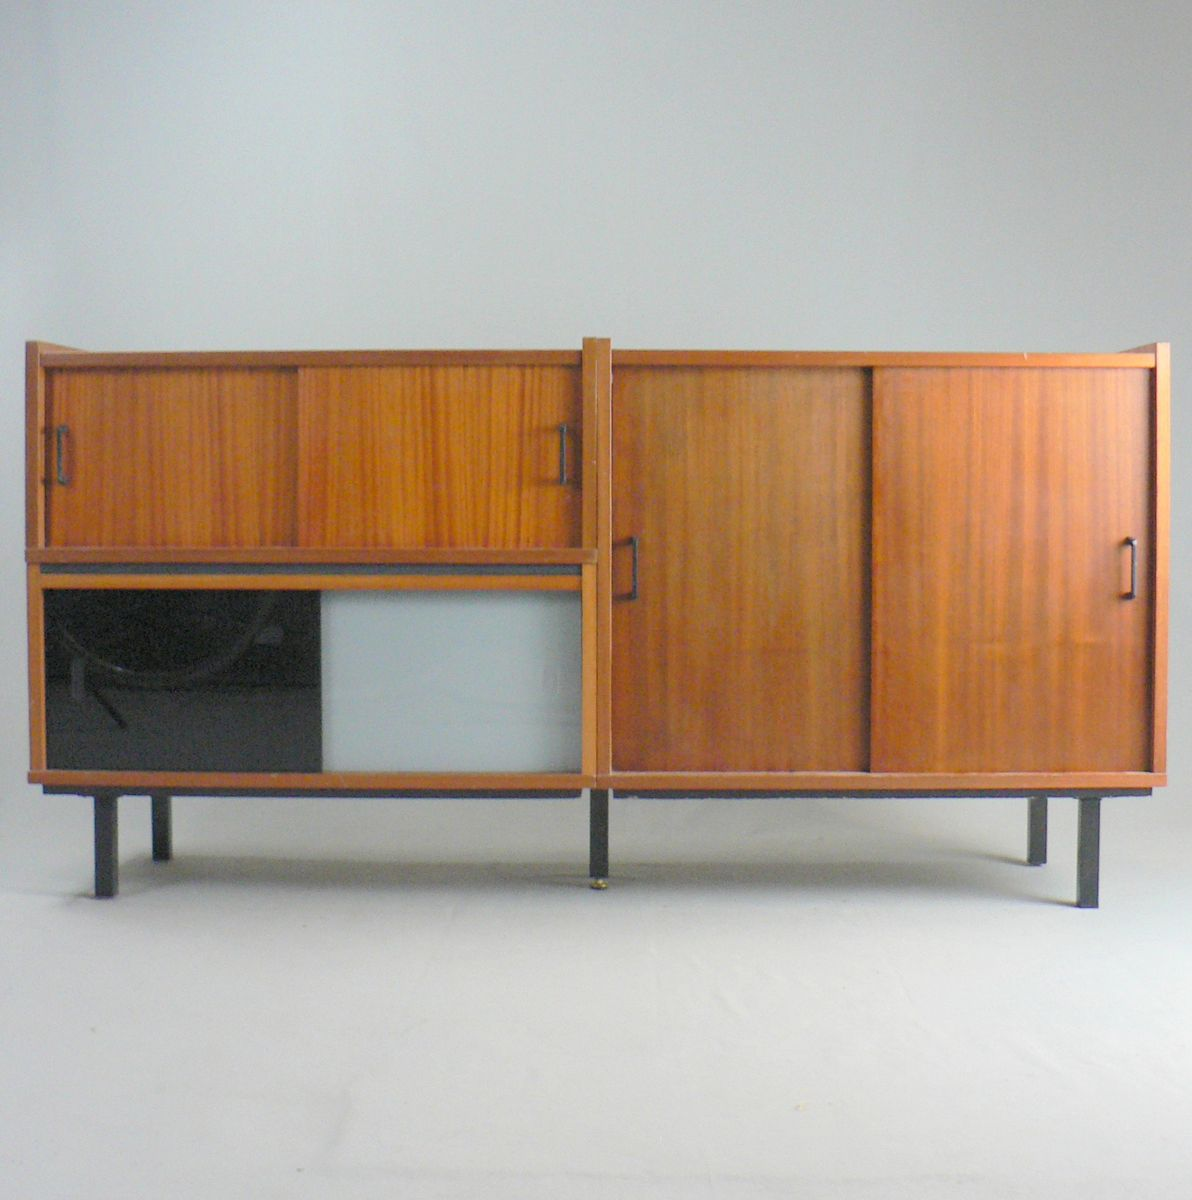 sideboard aus mahagoni furnier glas 1960er bei pamono kaufen. Black Bedroom Furniture Sets. Home Design Ideas